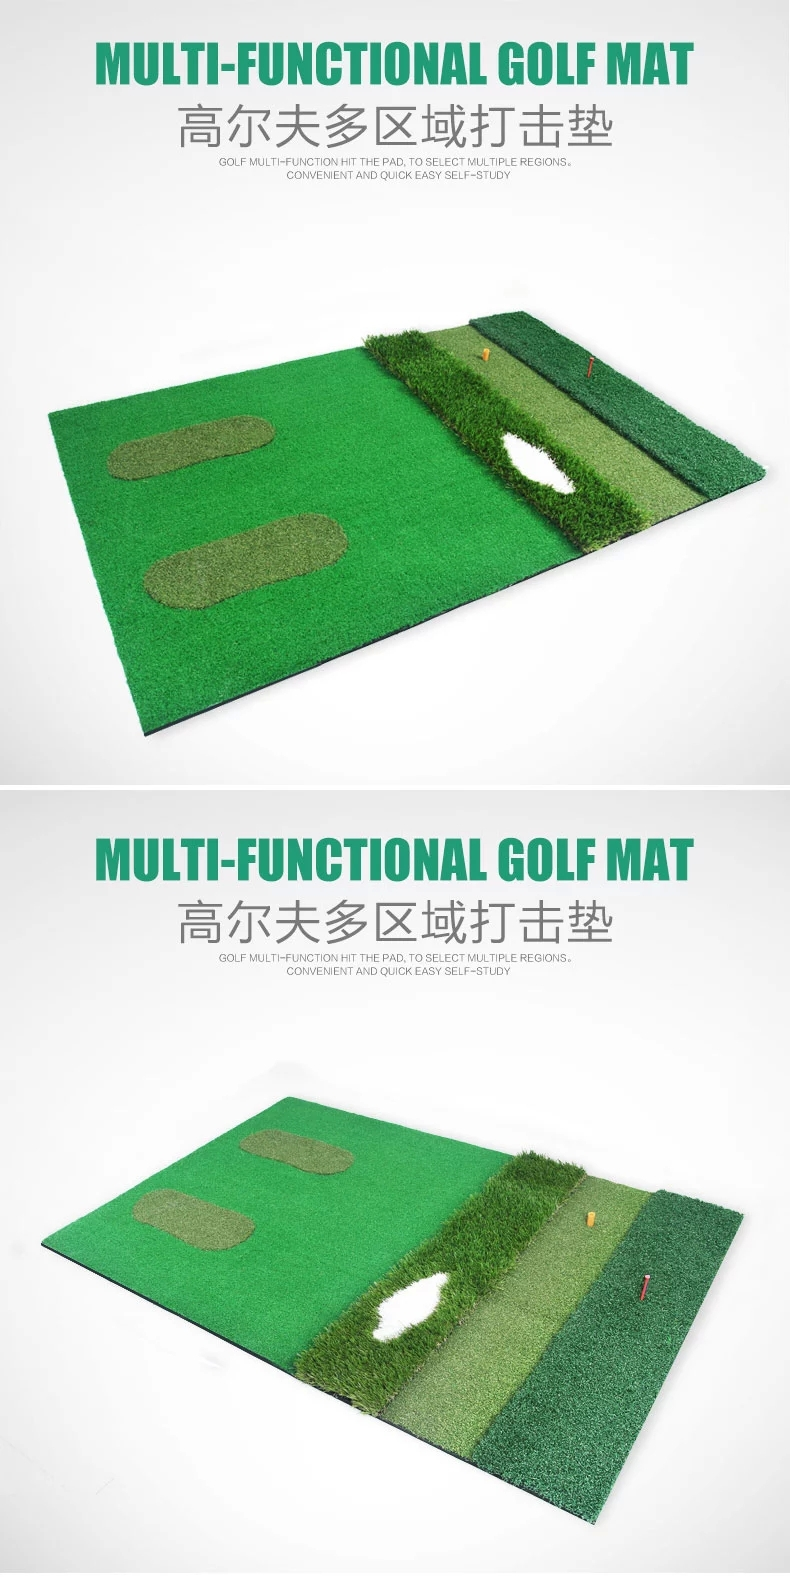 tee grass pad mats holder rubber x training smsender golf practice tulum backyard mat hitting best equipment indoor co